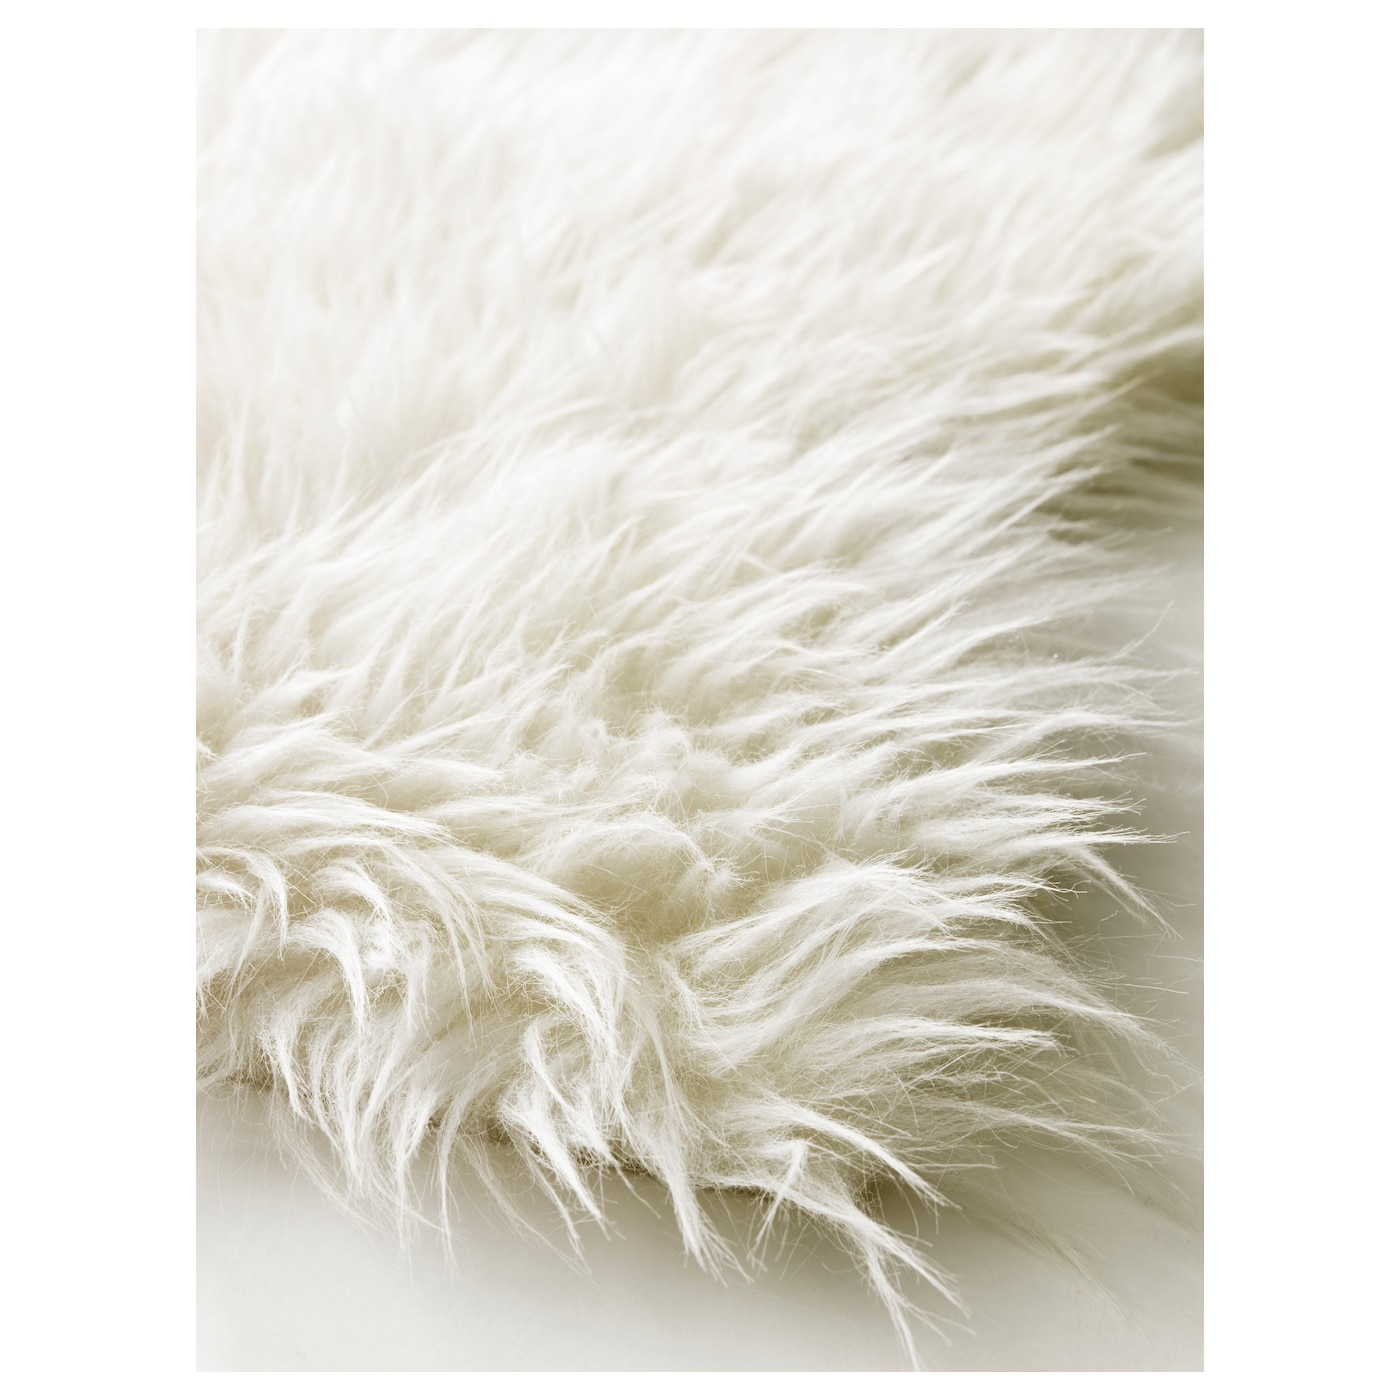 greek flooring most fuzzy white round furry fluffy cream black shaggy raggy ikea flokati area moroccan rugs rug soft walmart brown shag large pink mean blue eyelash navy wool cheap